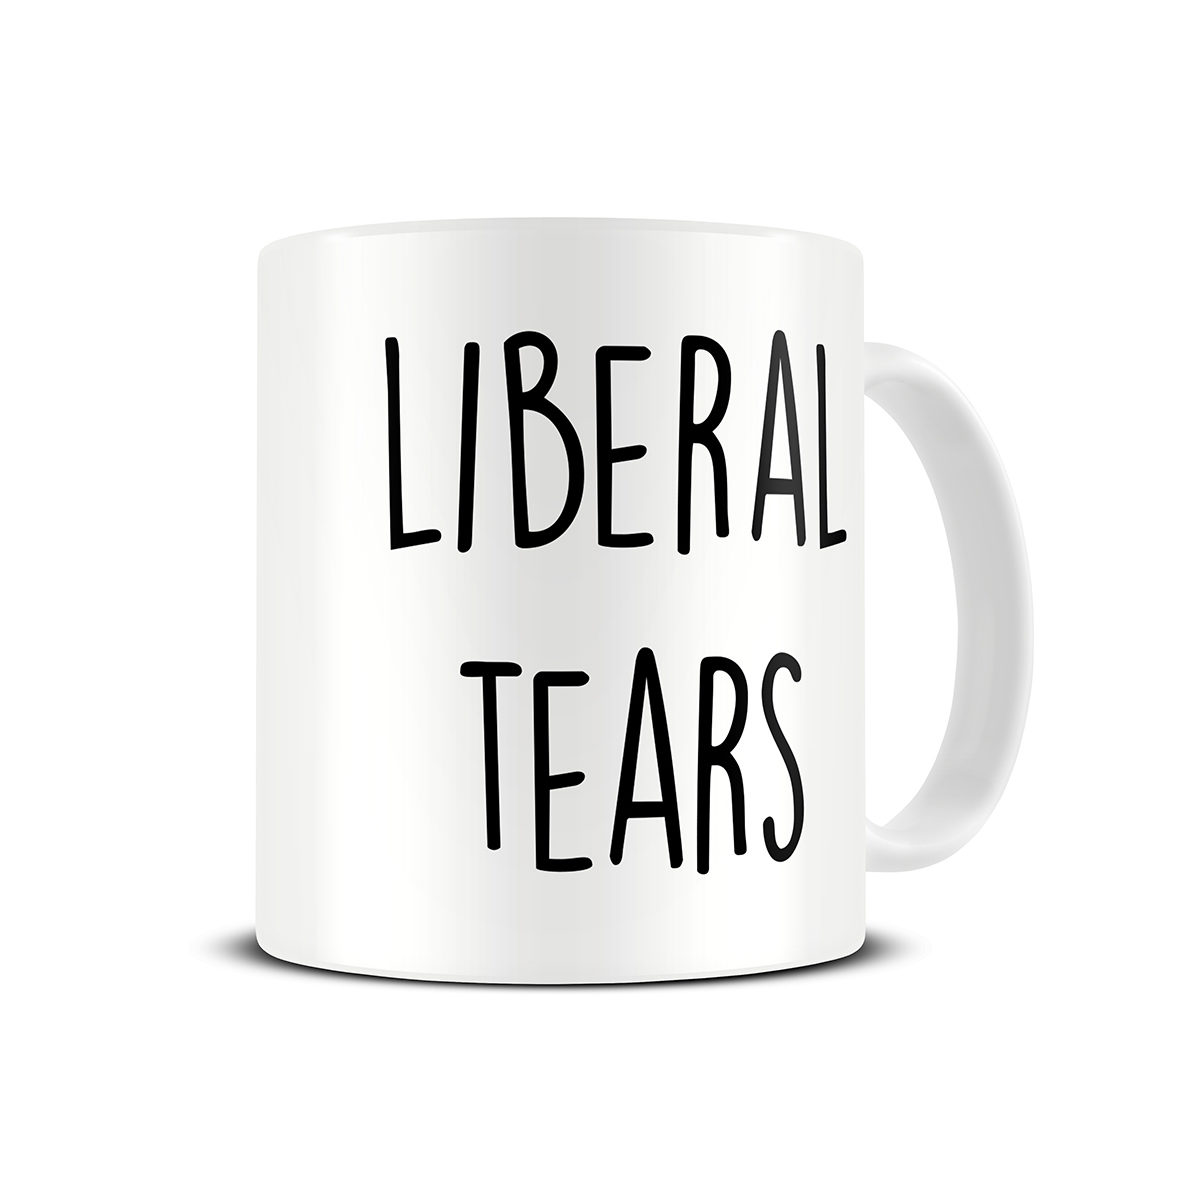 donald trump alt right mug